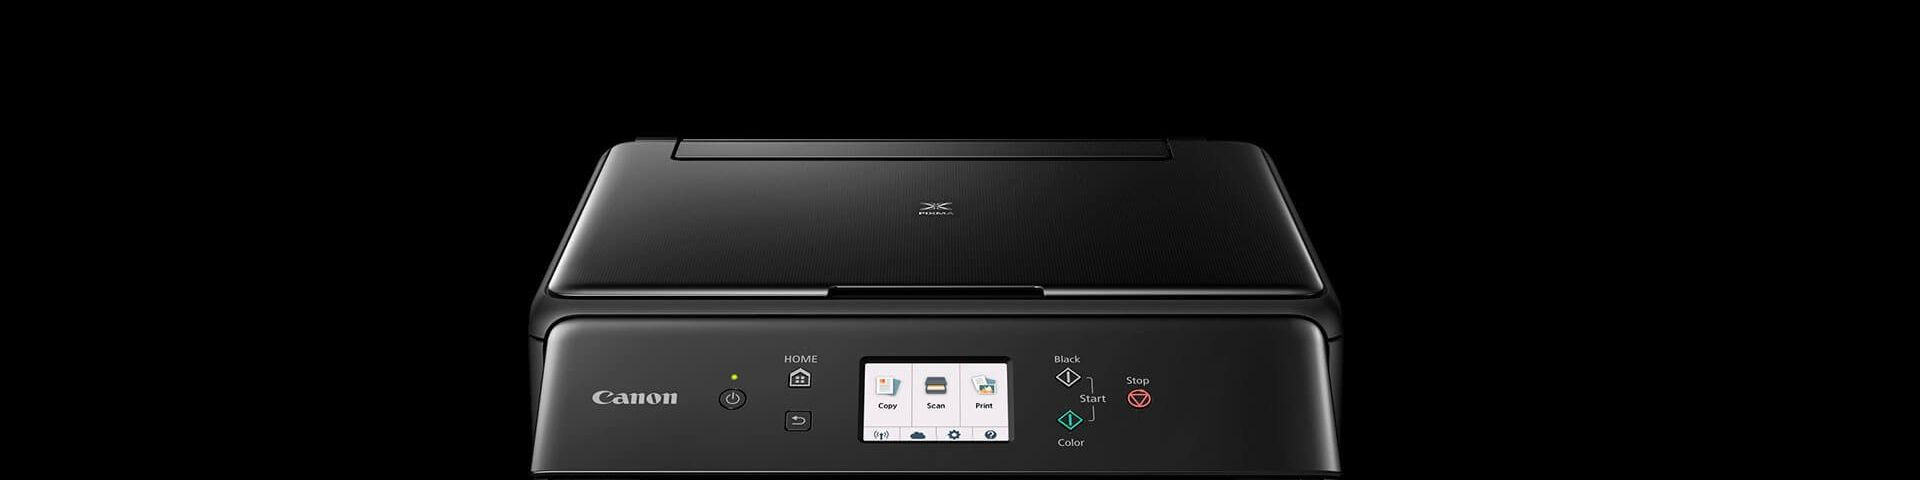 Home & Photo Printers PIXMA MG7751 Lifestyle side view